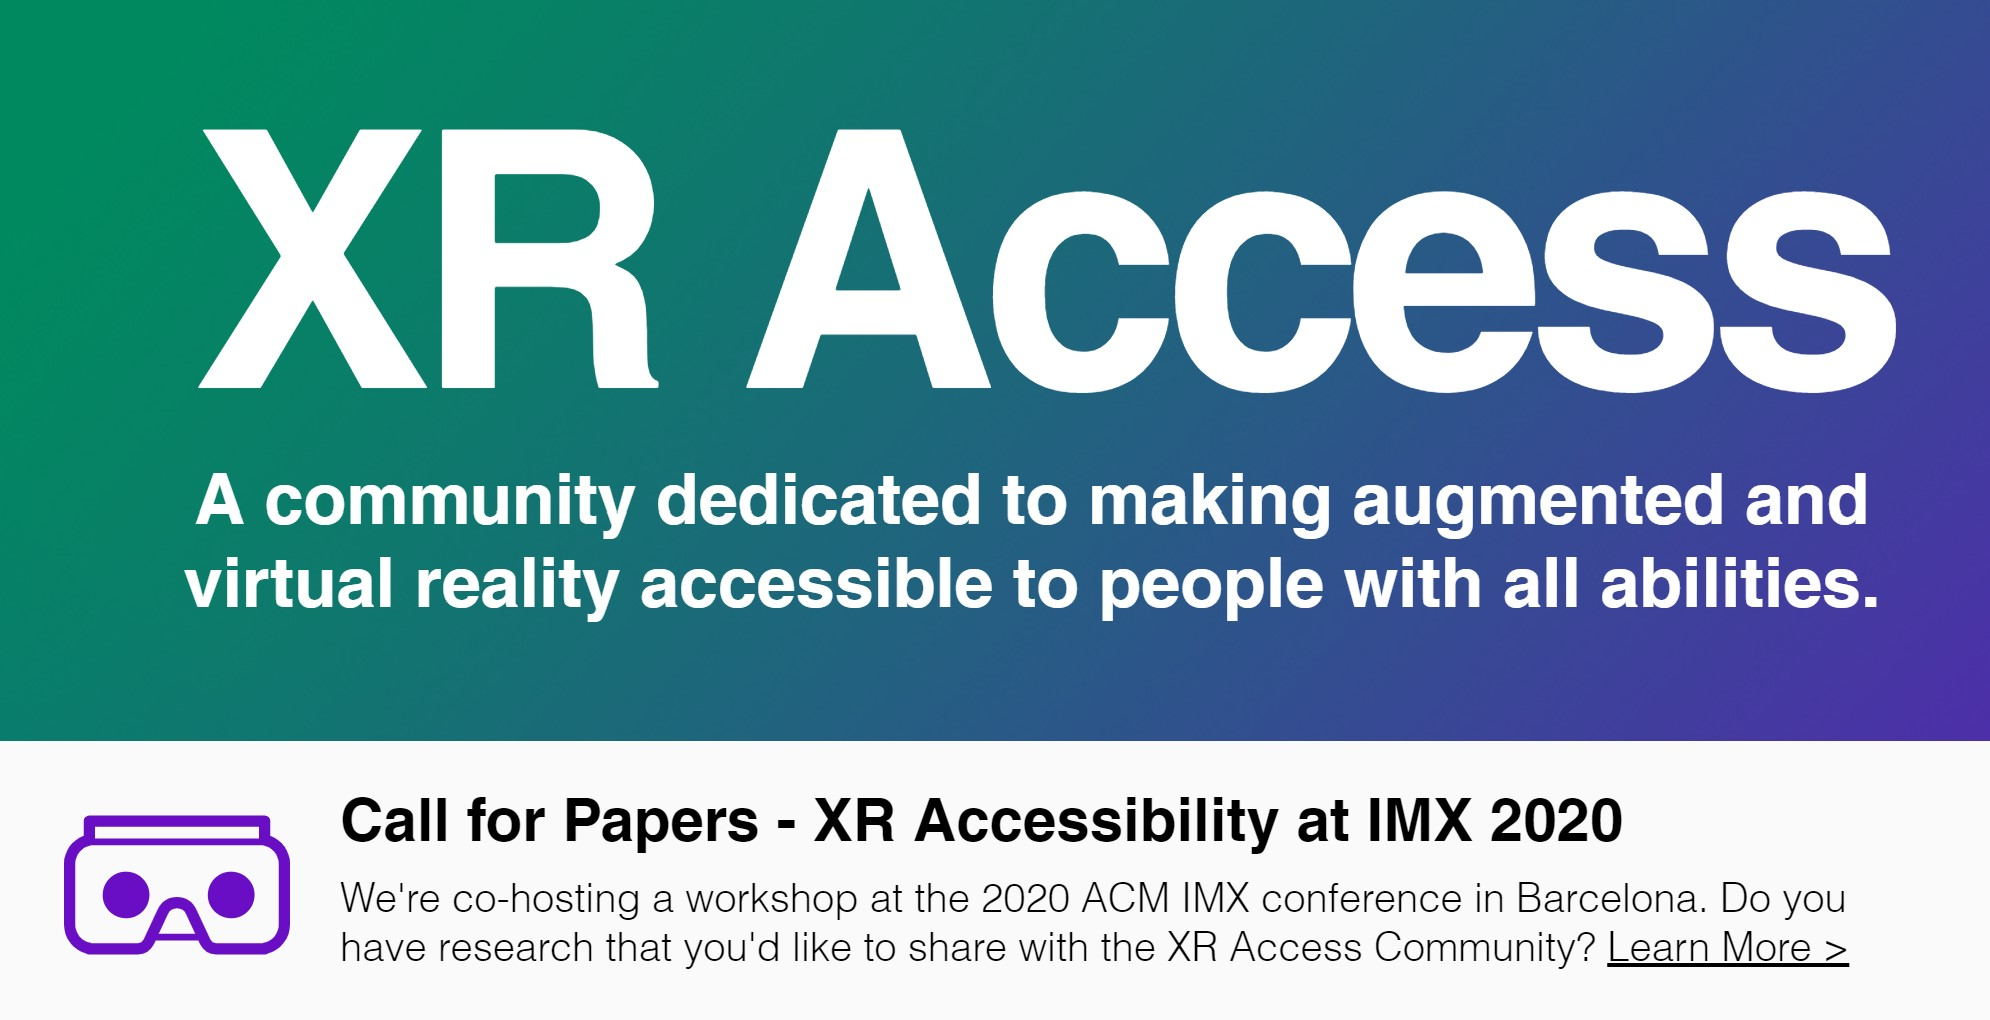 Let's Make XR Accessible